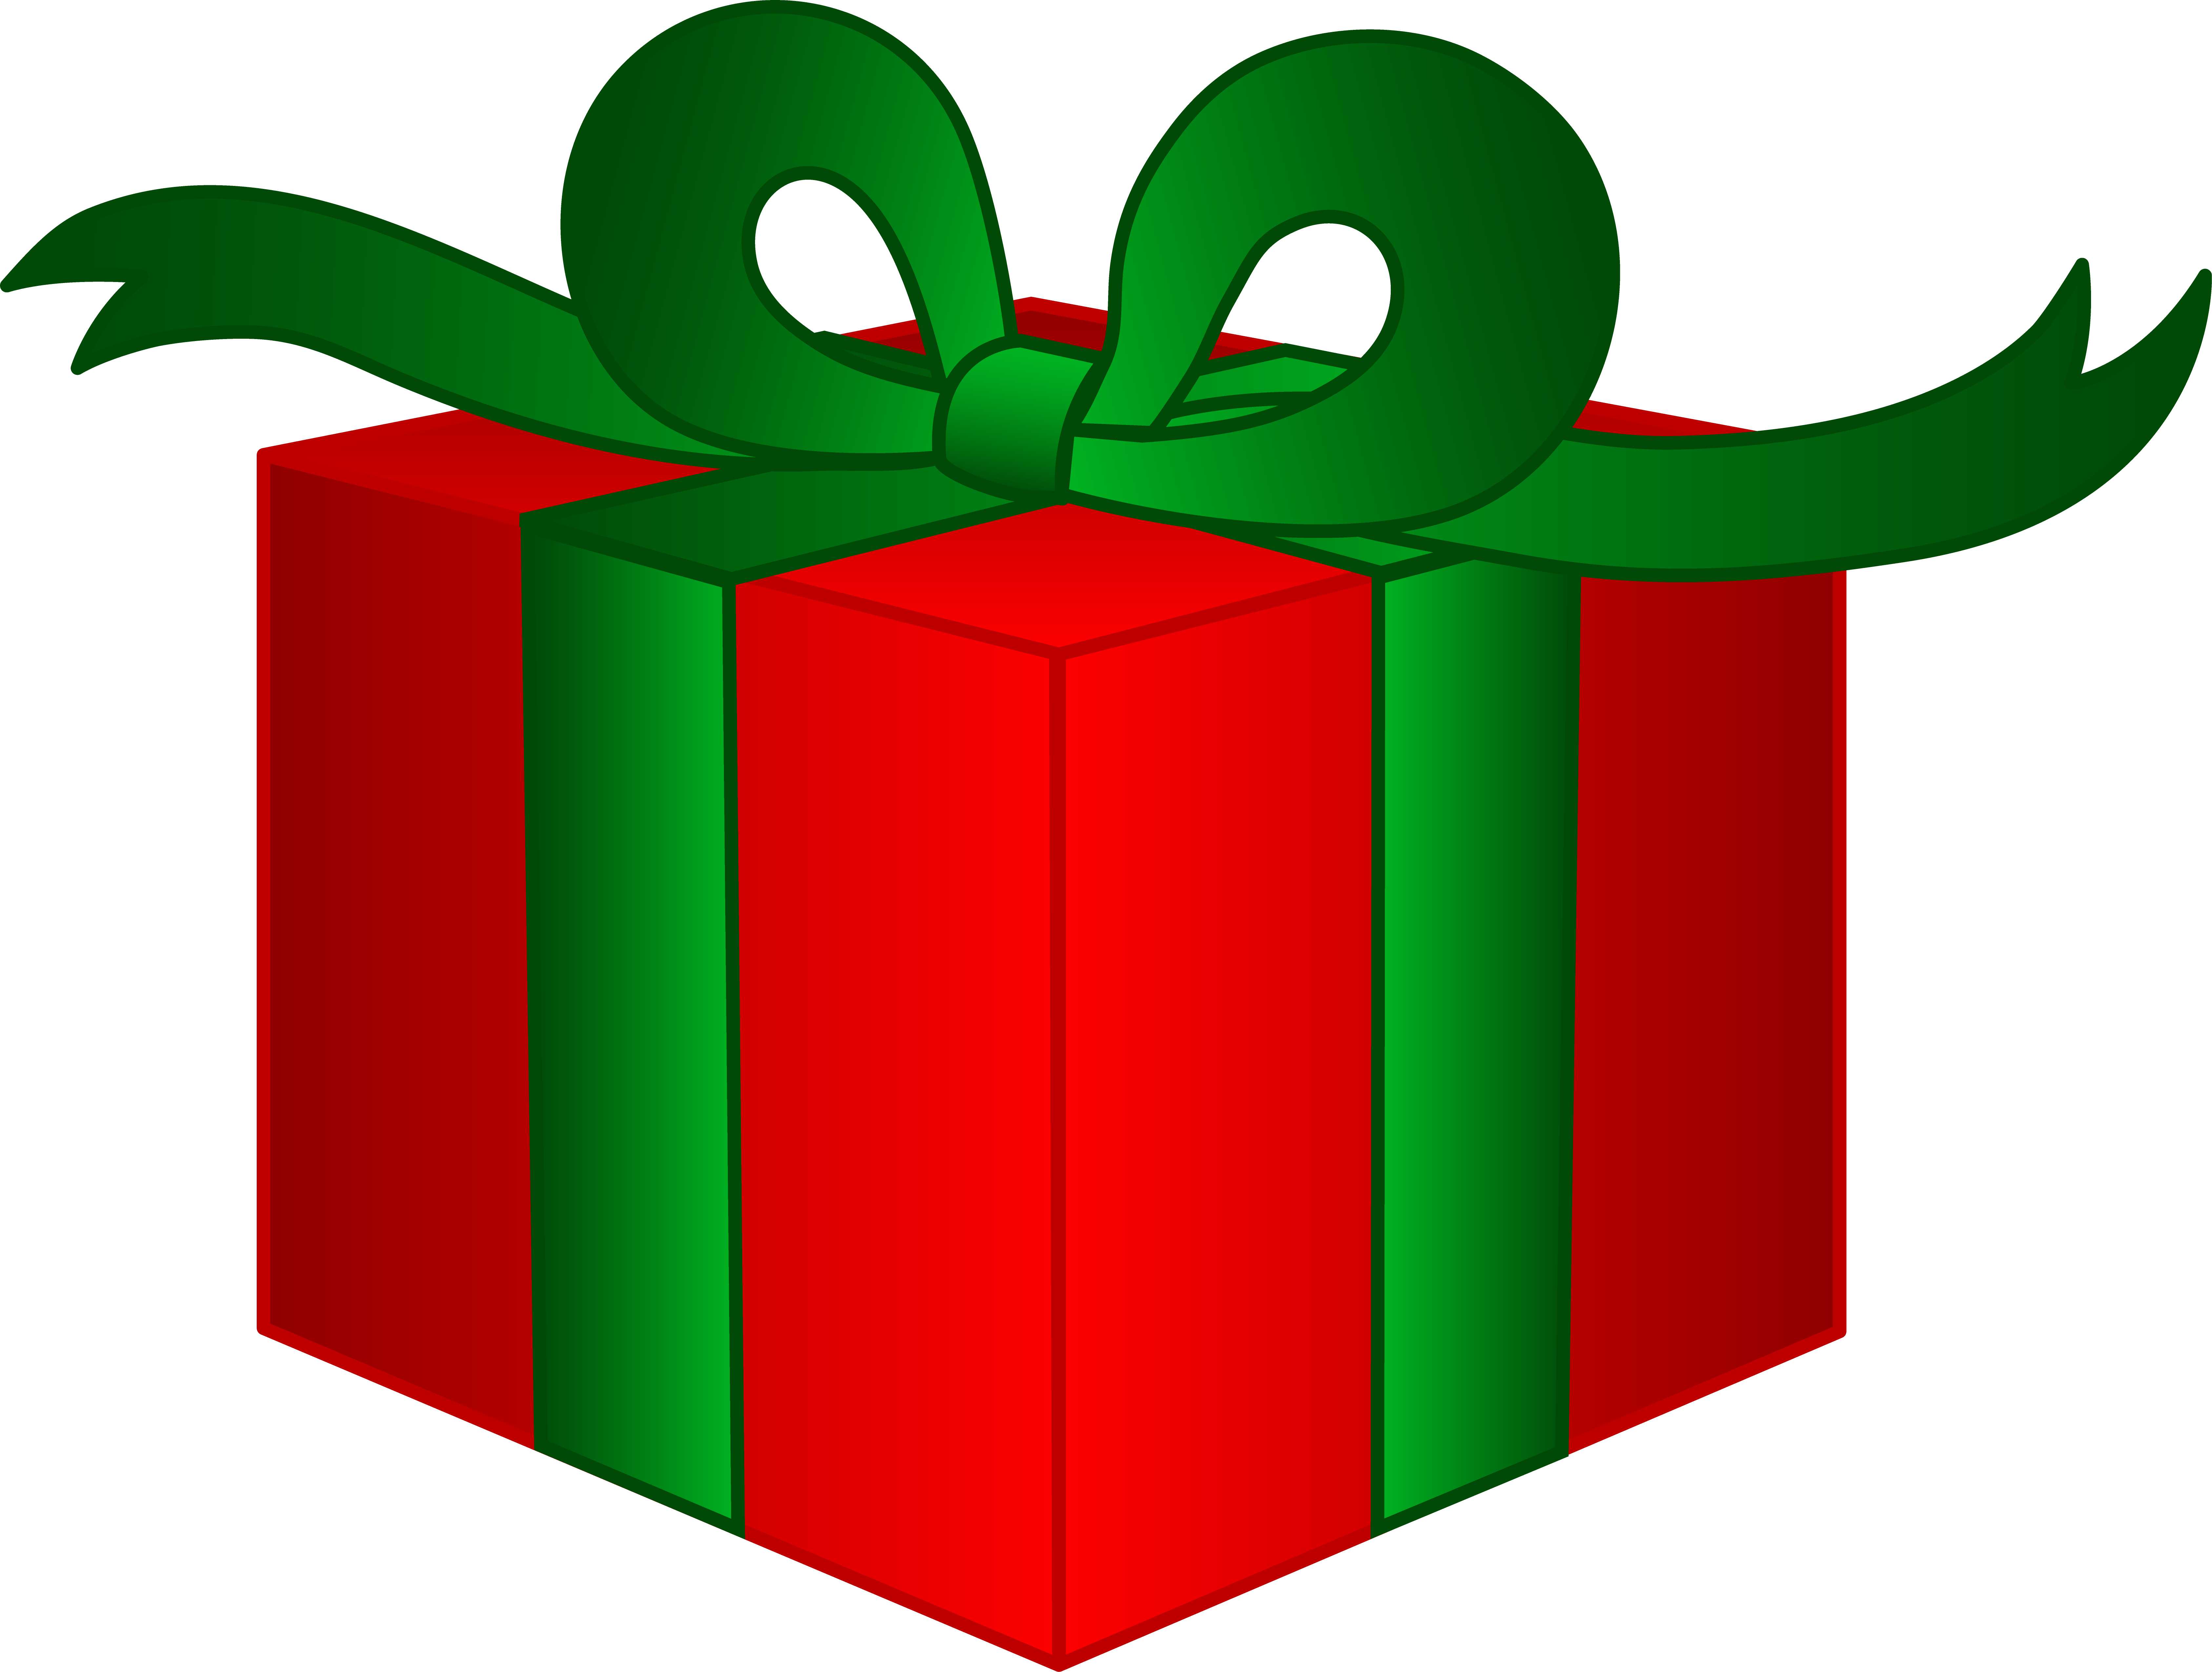 6747x5099 Christmas Gift Boxes Clip Art Happy Holidays!